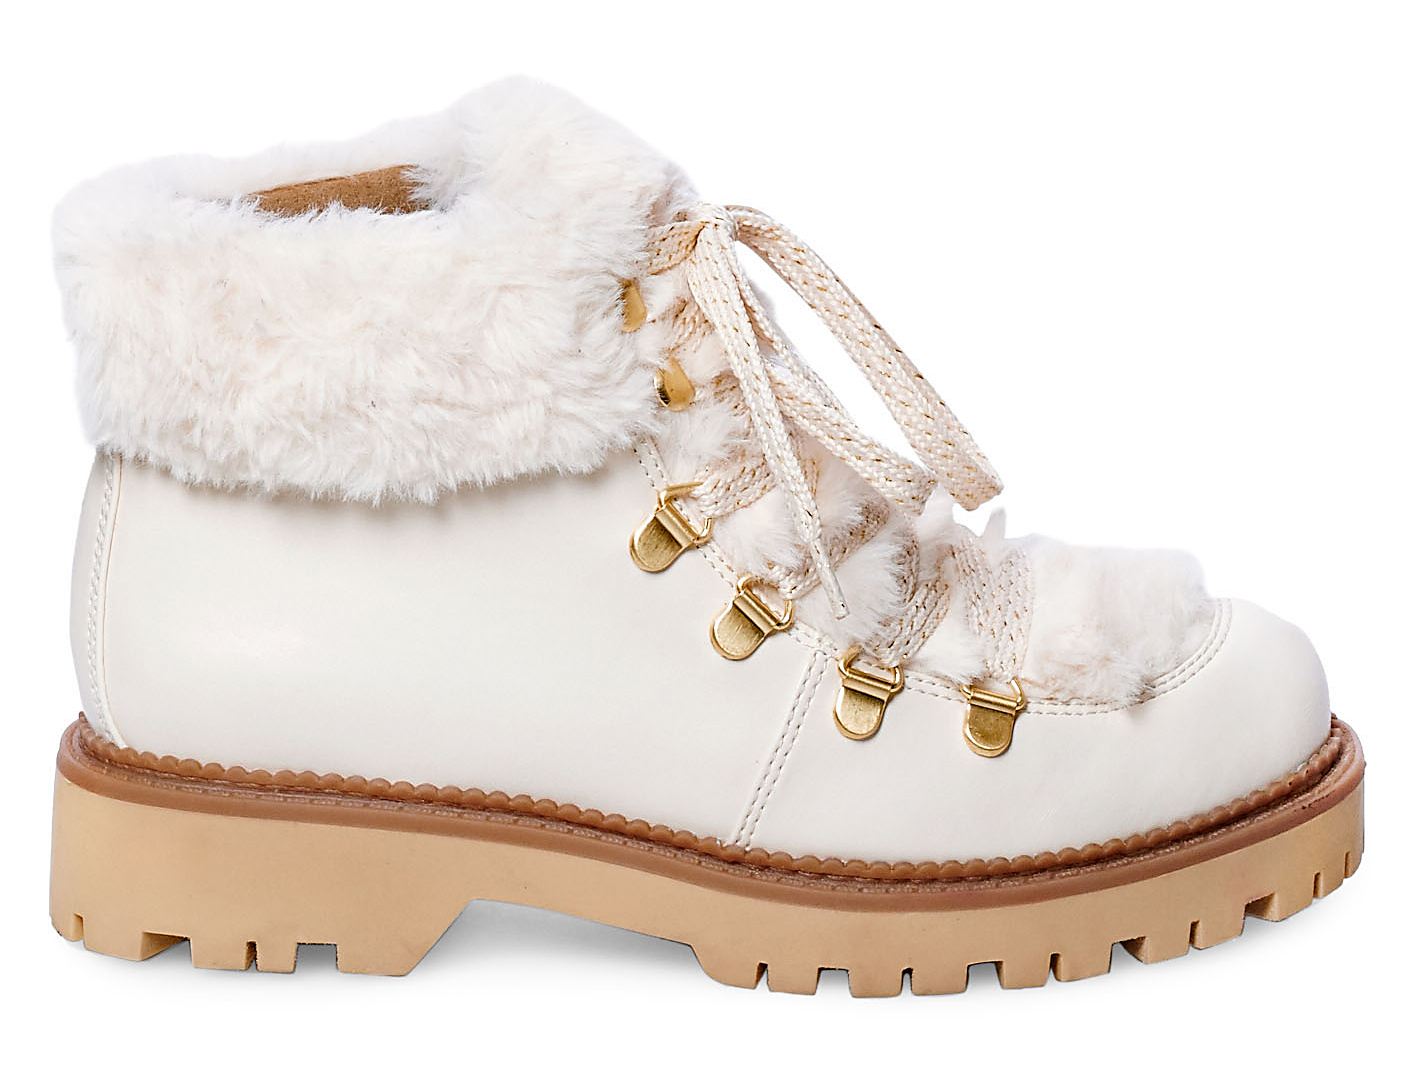 Kilbourn Boots from Circus by Sam Edelman